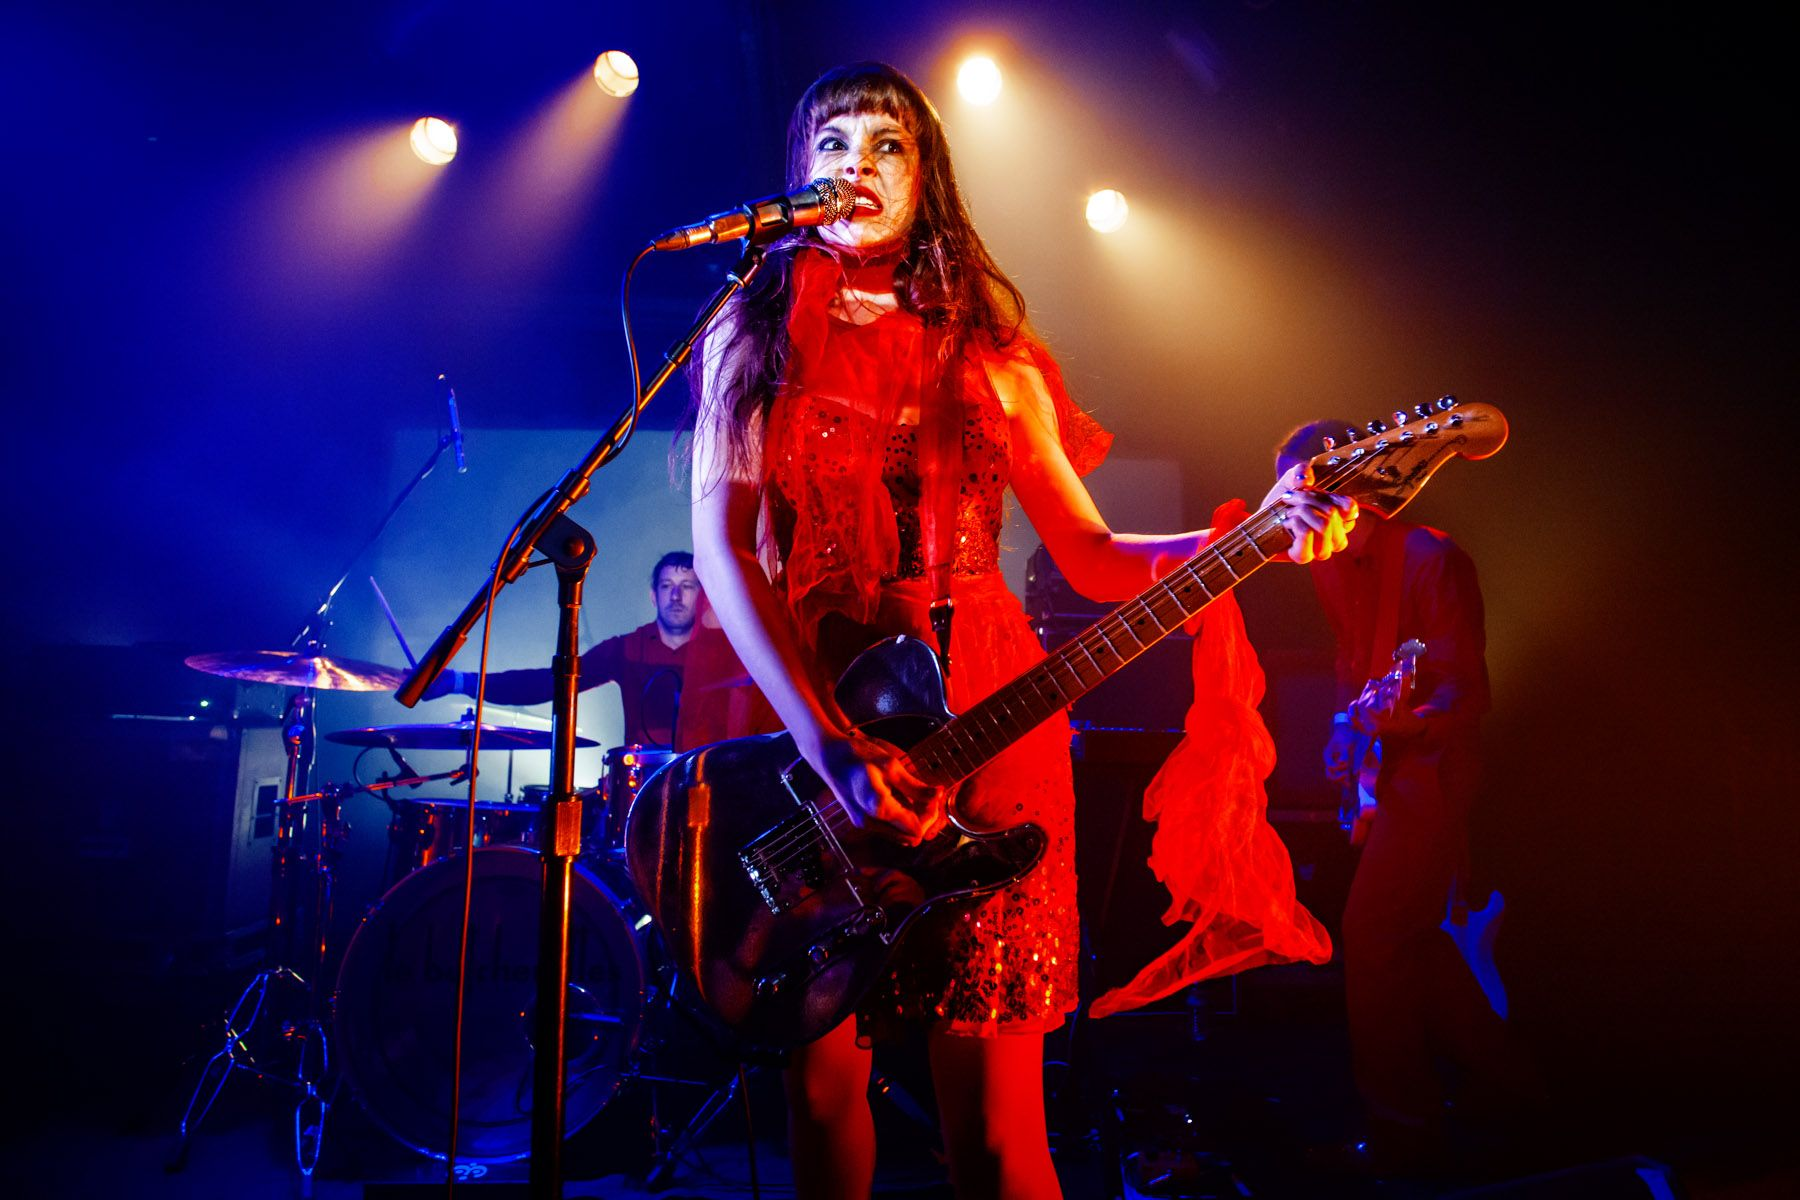 Le Butcherettes - 2016 - Los Angeles, CA